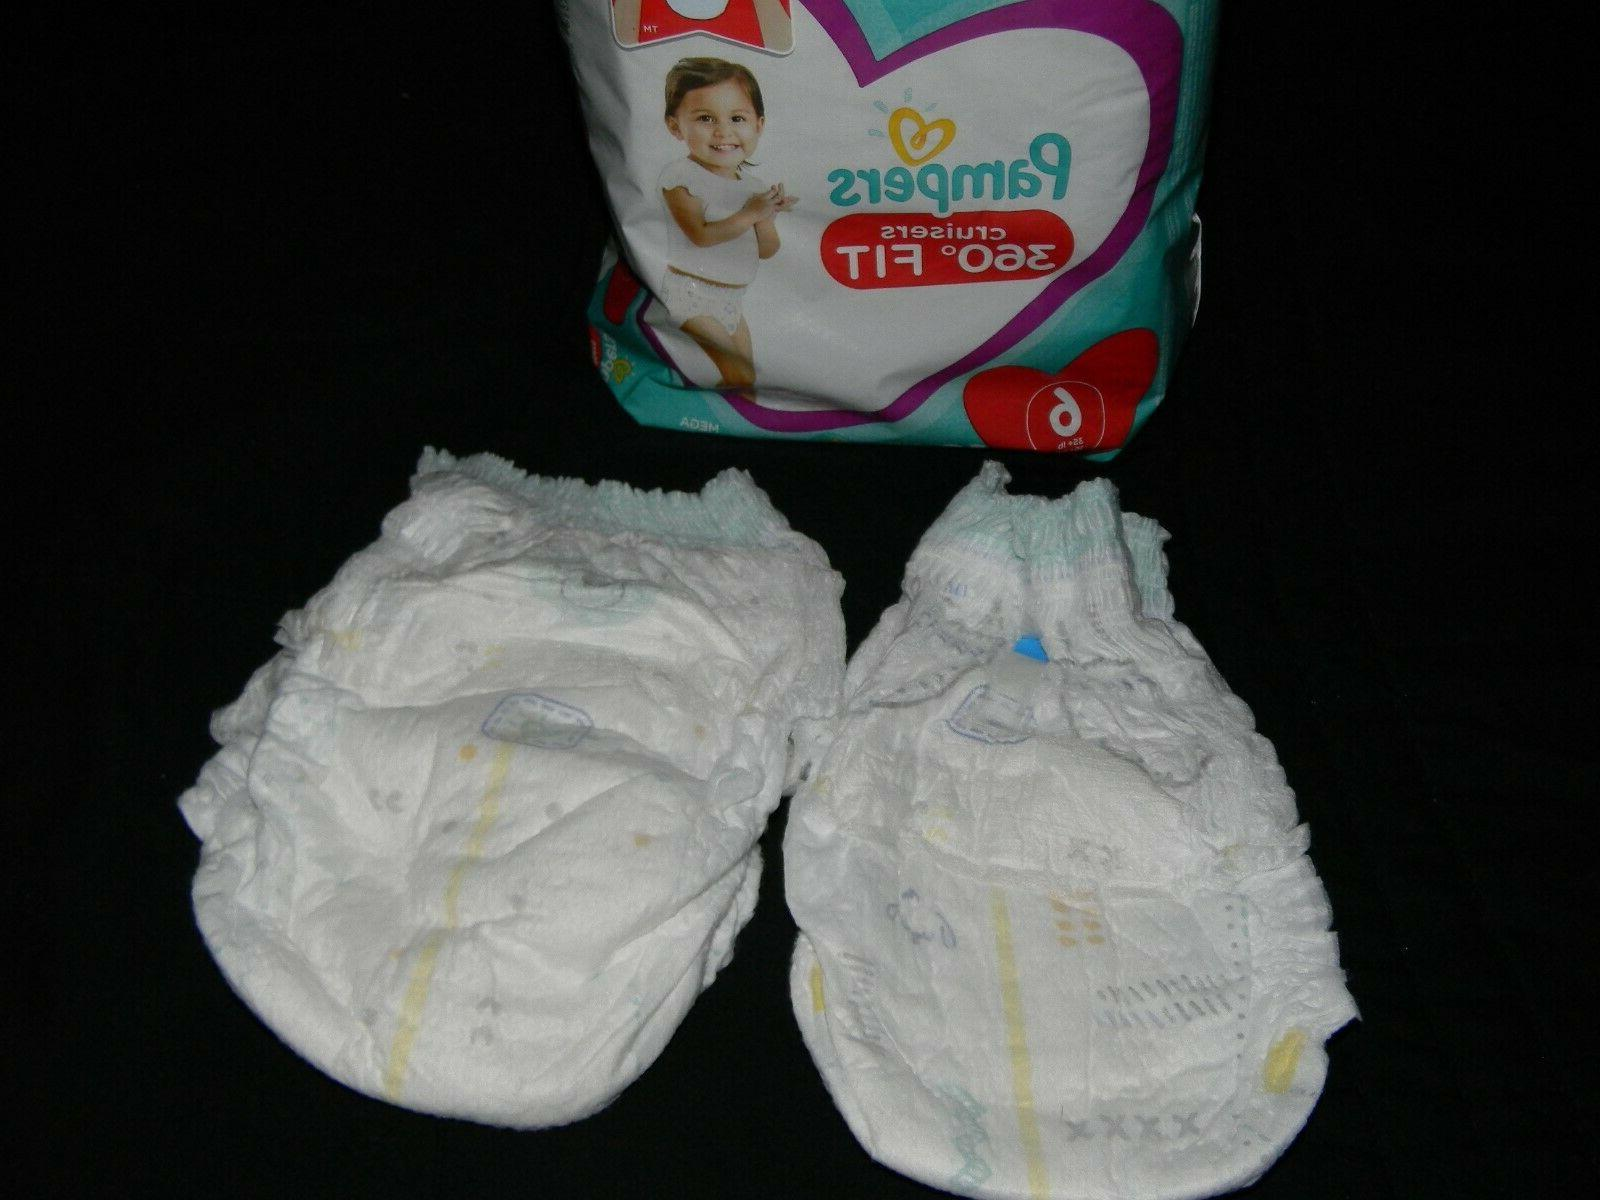 4 Pampers cruisers fit size to fit waist